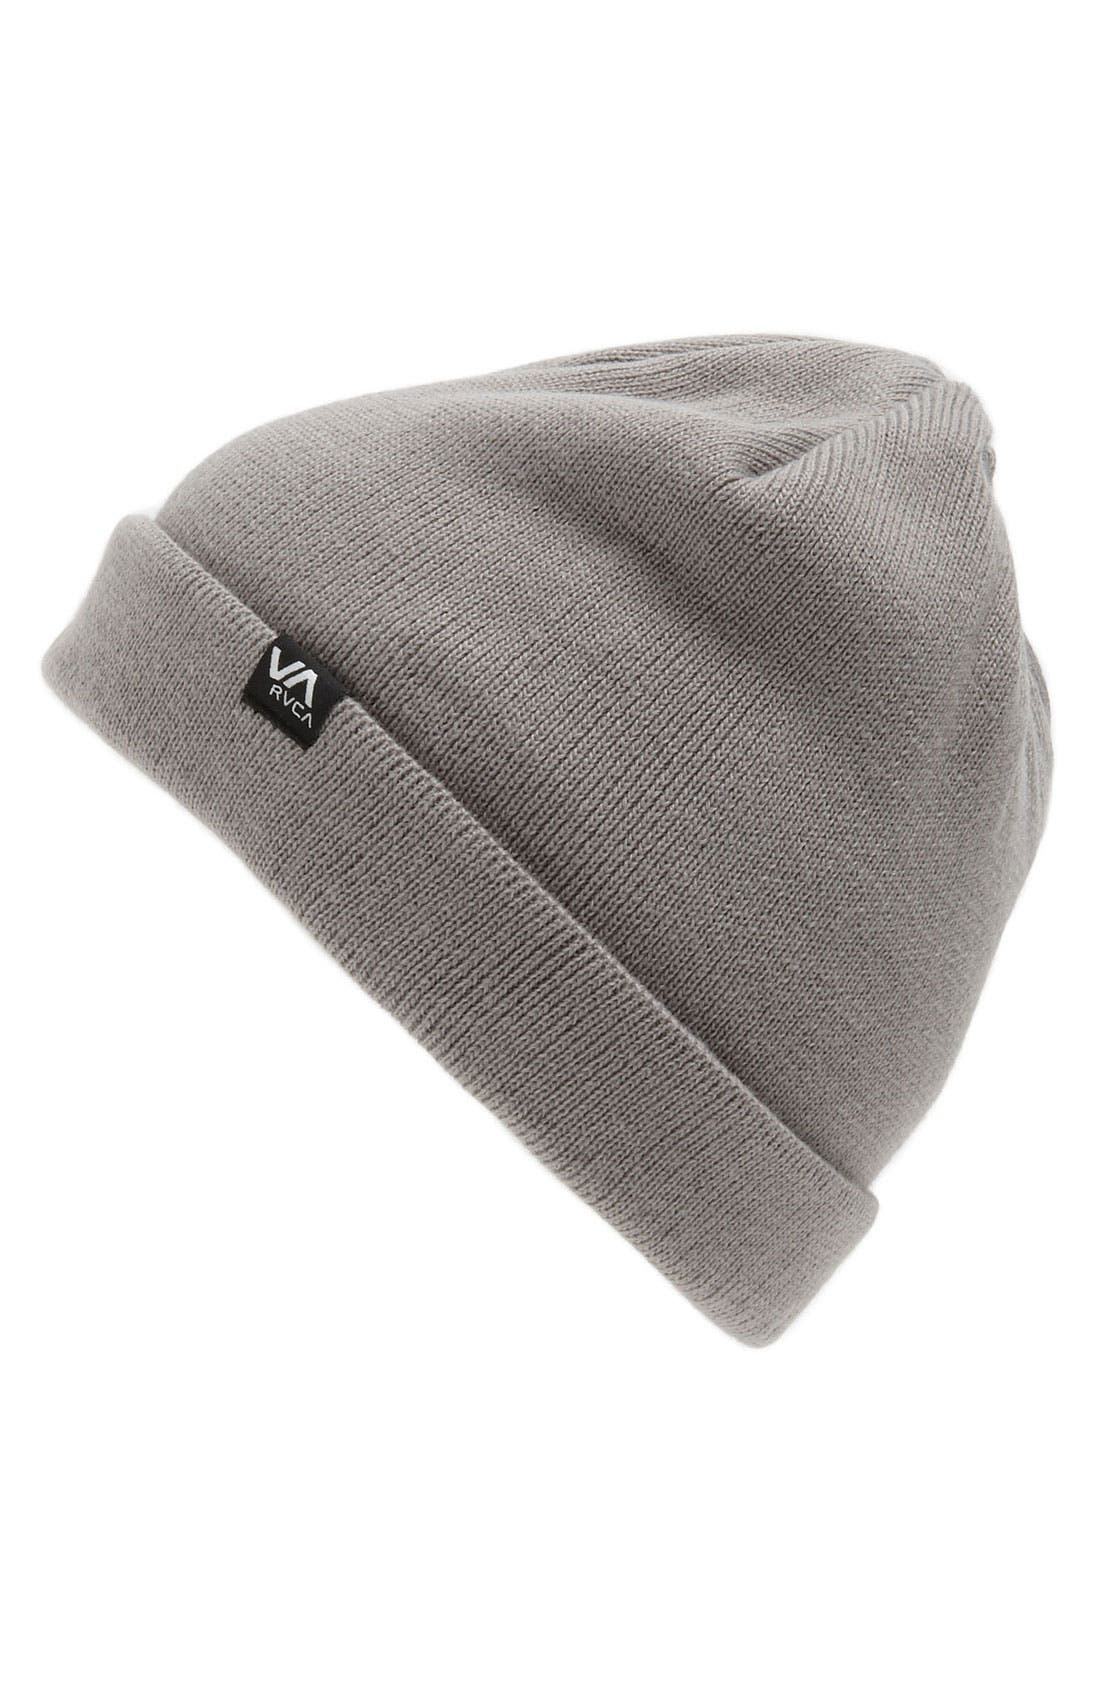 Main Image - RVCA 'Scrap' Knit Cap